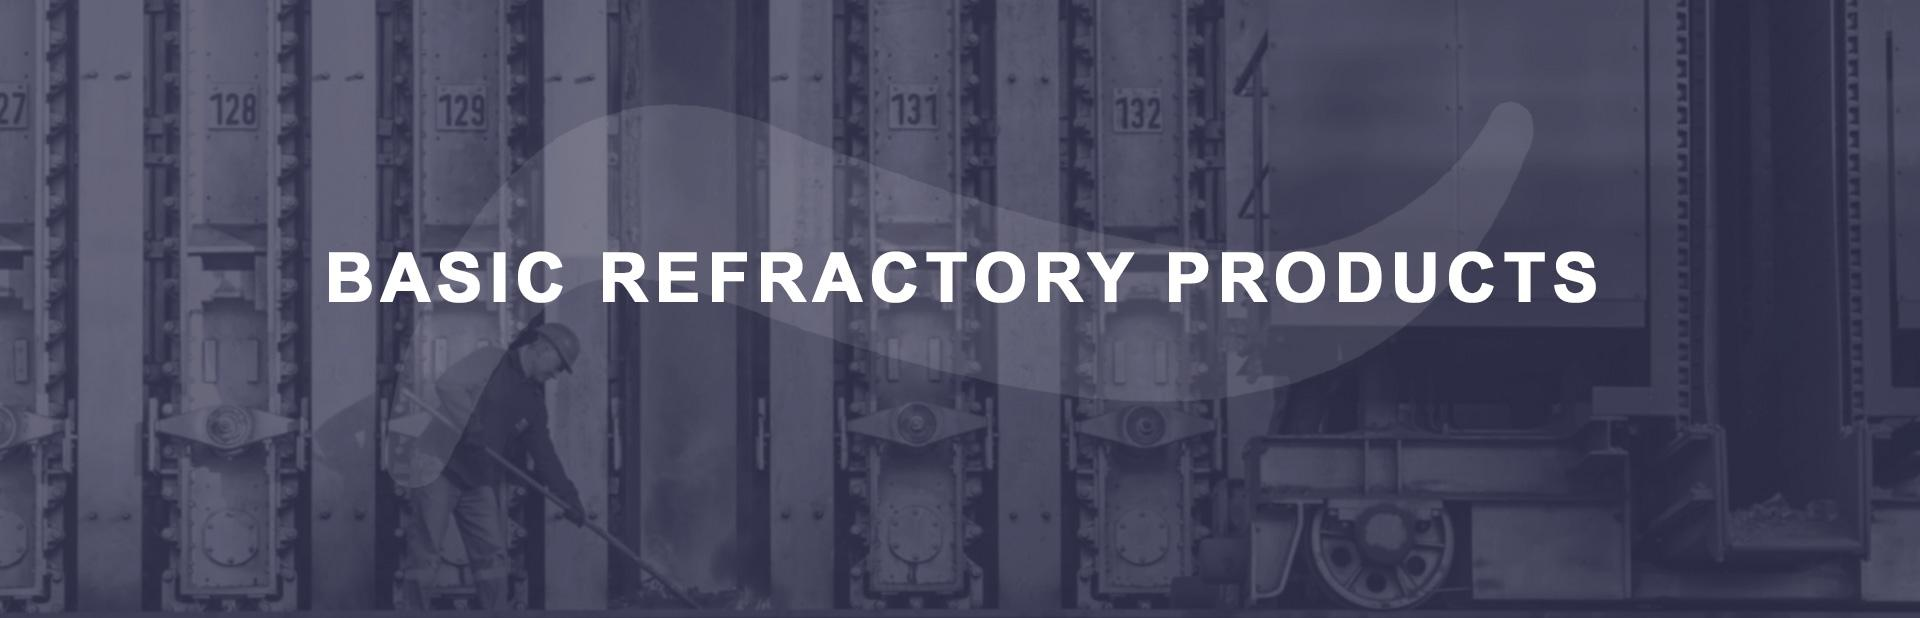 Basic refractory products banner